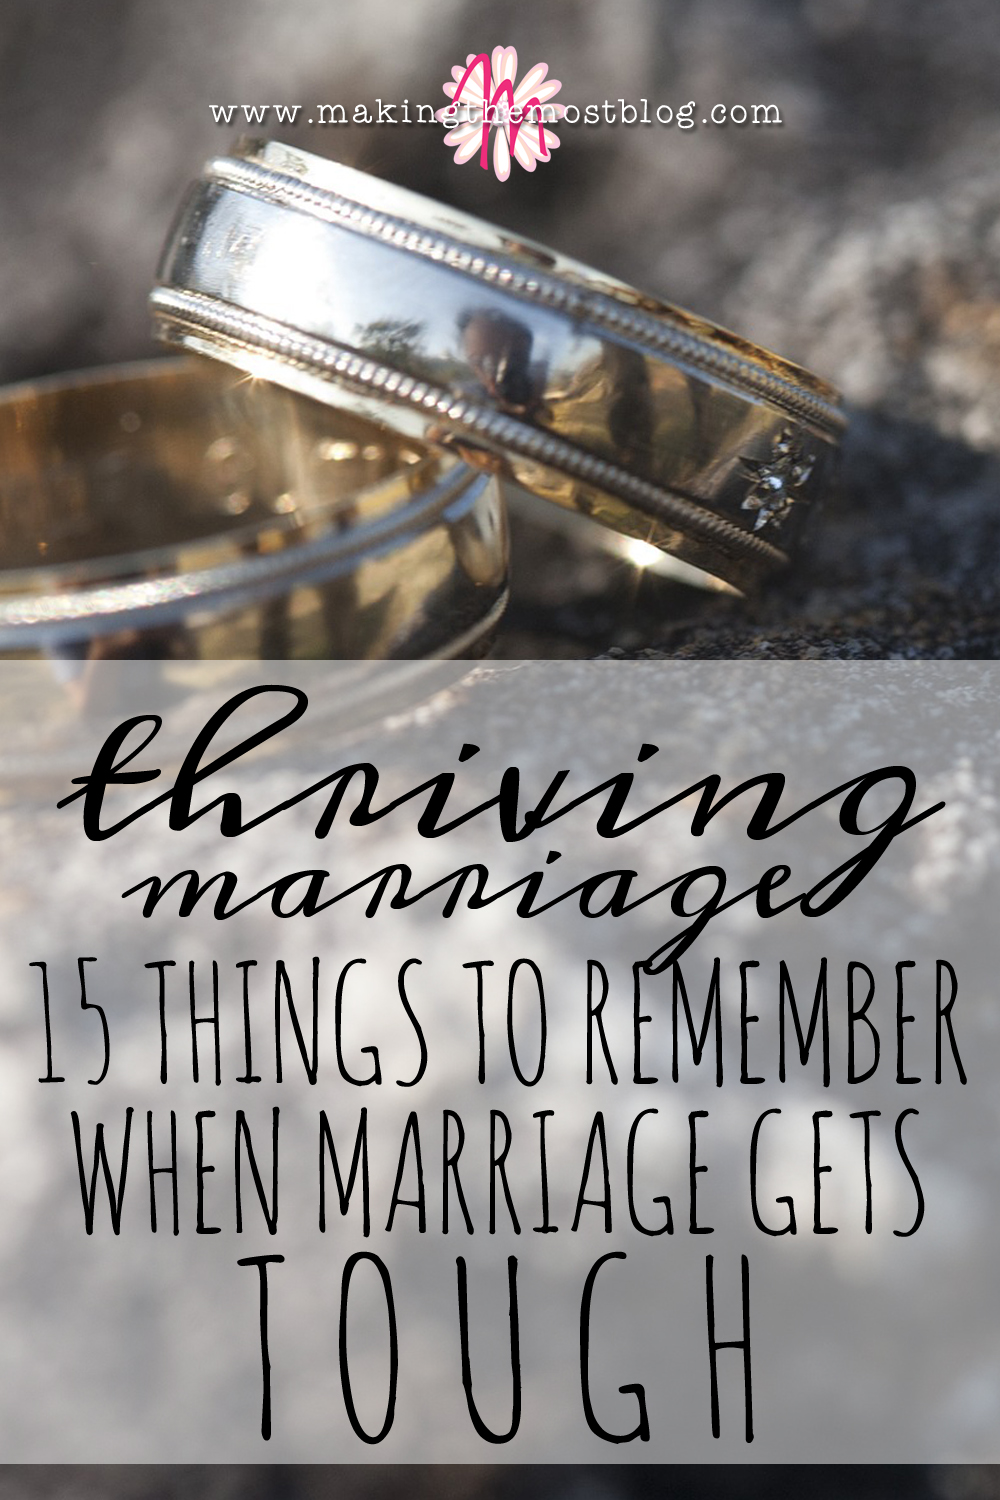 Thriving Marriage: 15 Things to Remember When Marriage Gets Tough | Making the Most Blog